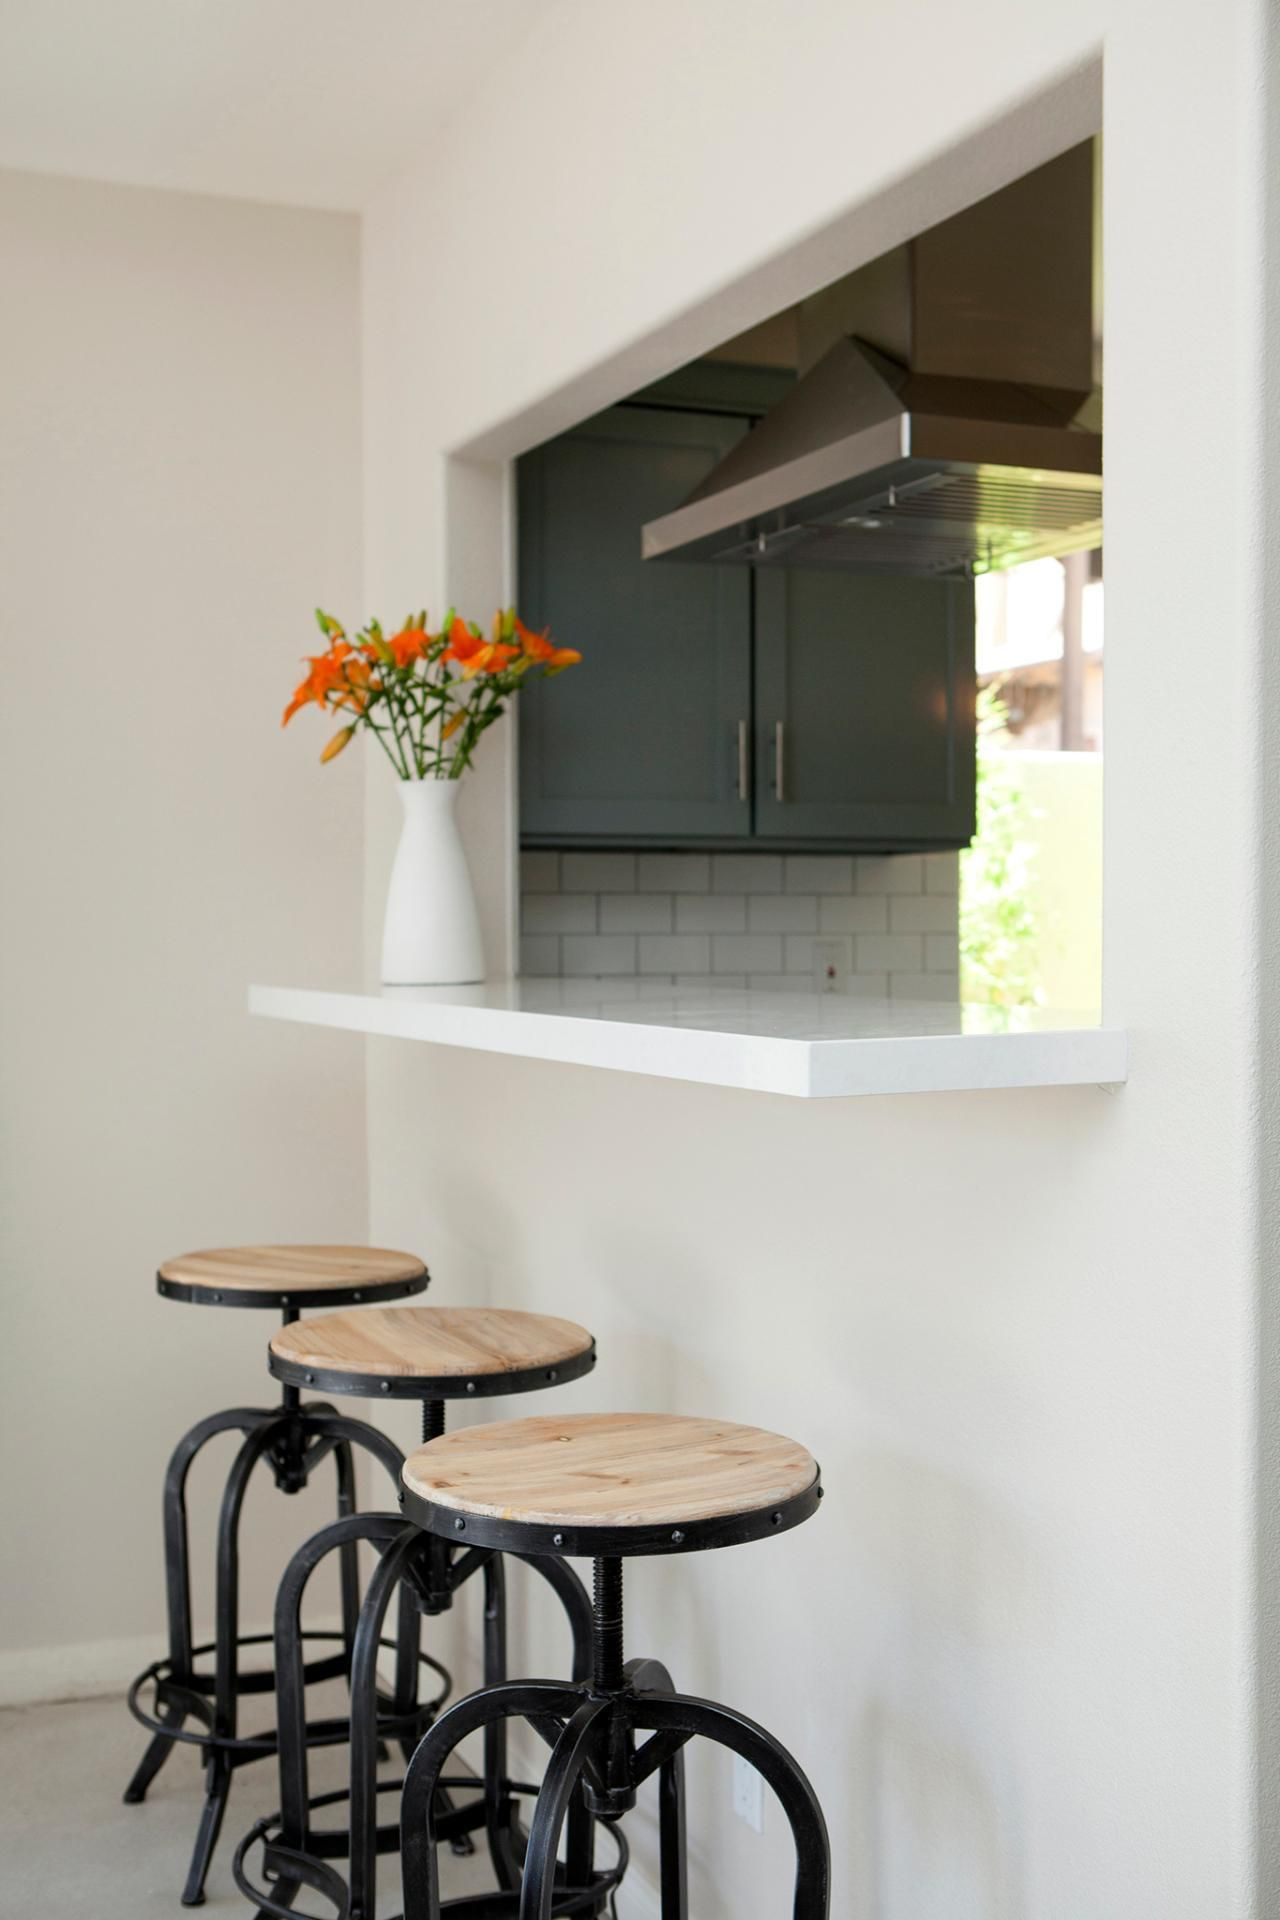 High Quality ... Cut Out Designs. Fabulous Kitchen Decorating Wall Decor Breakfast Bar  Ideas Kitchen .